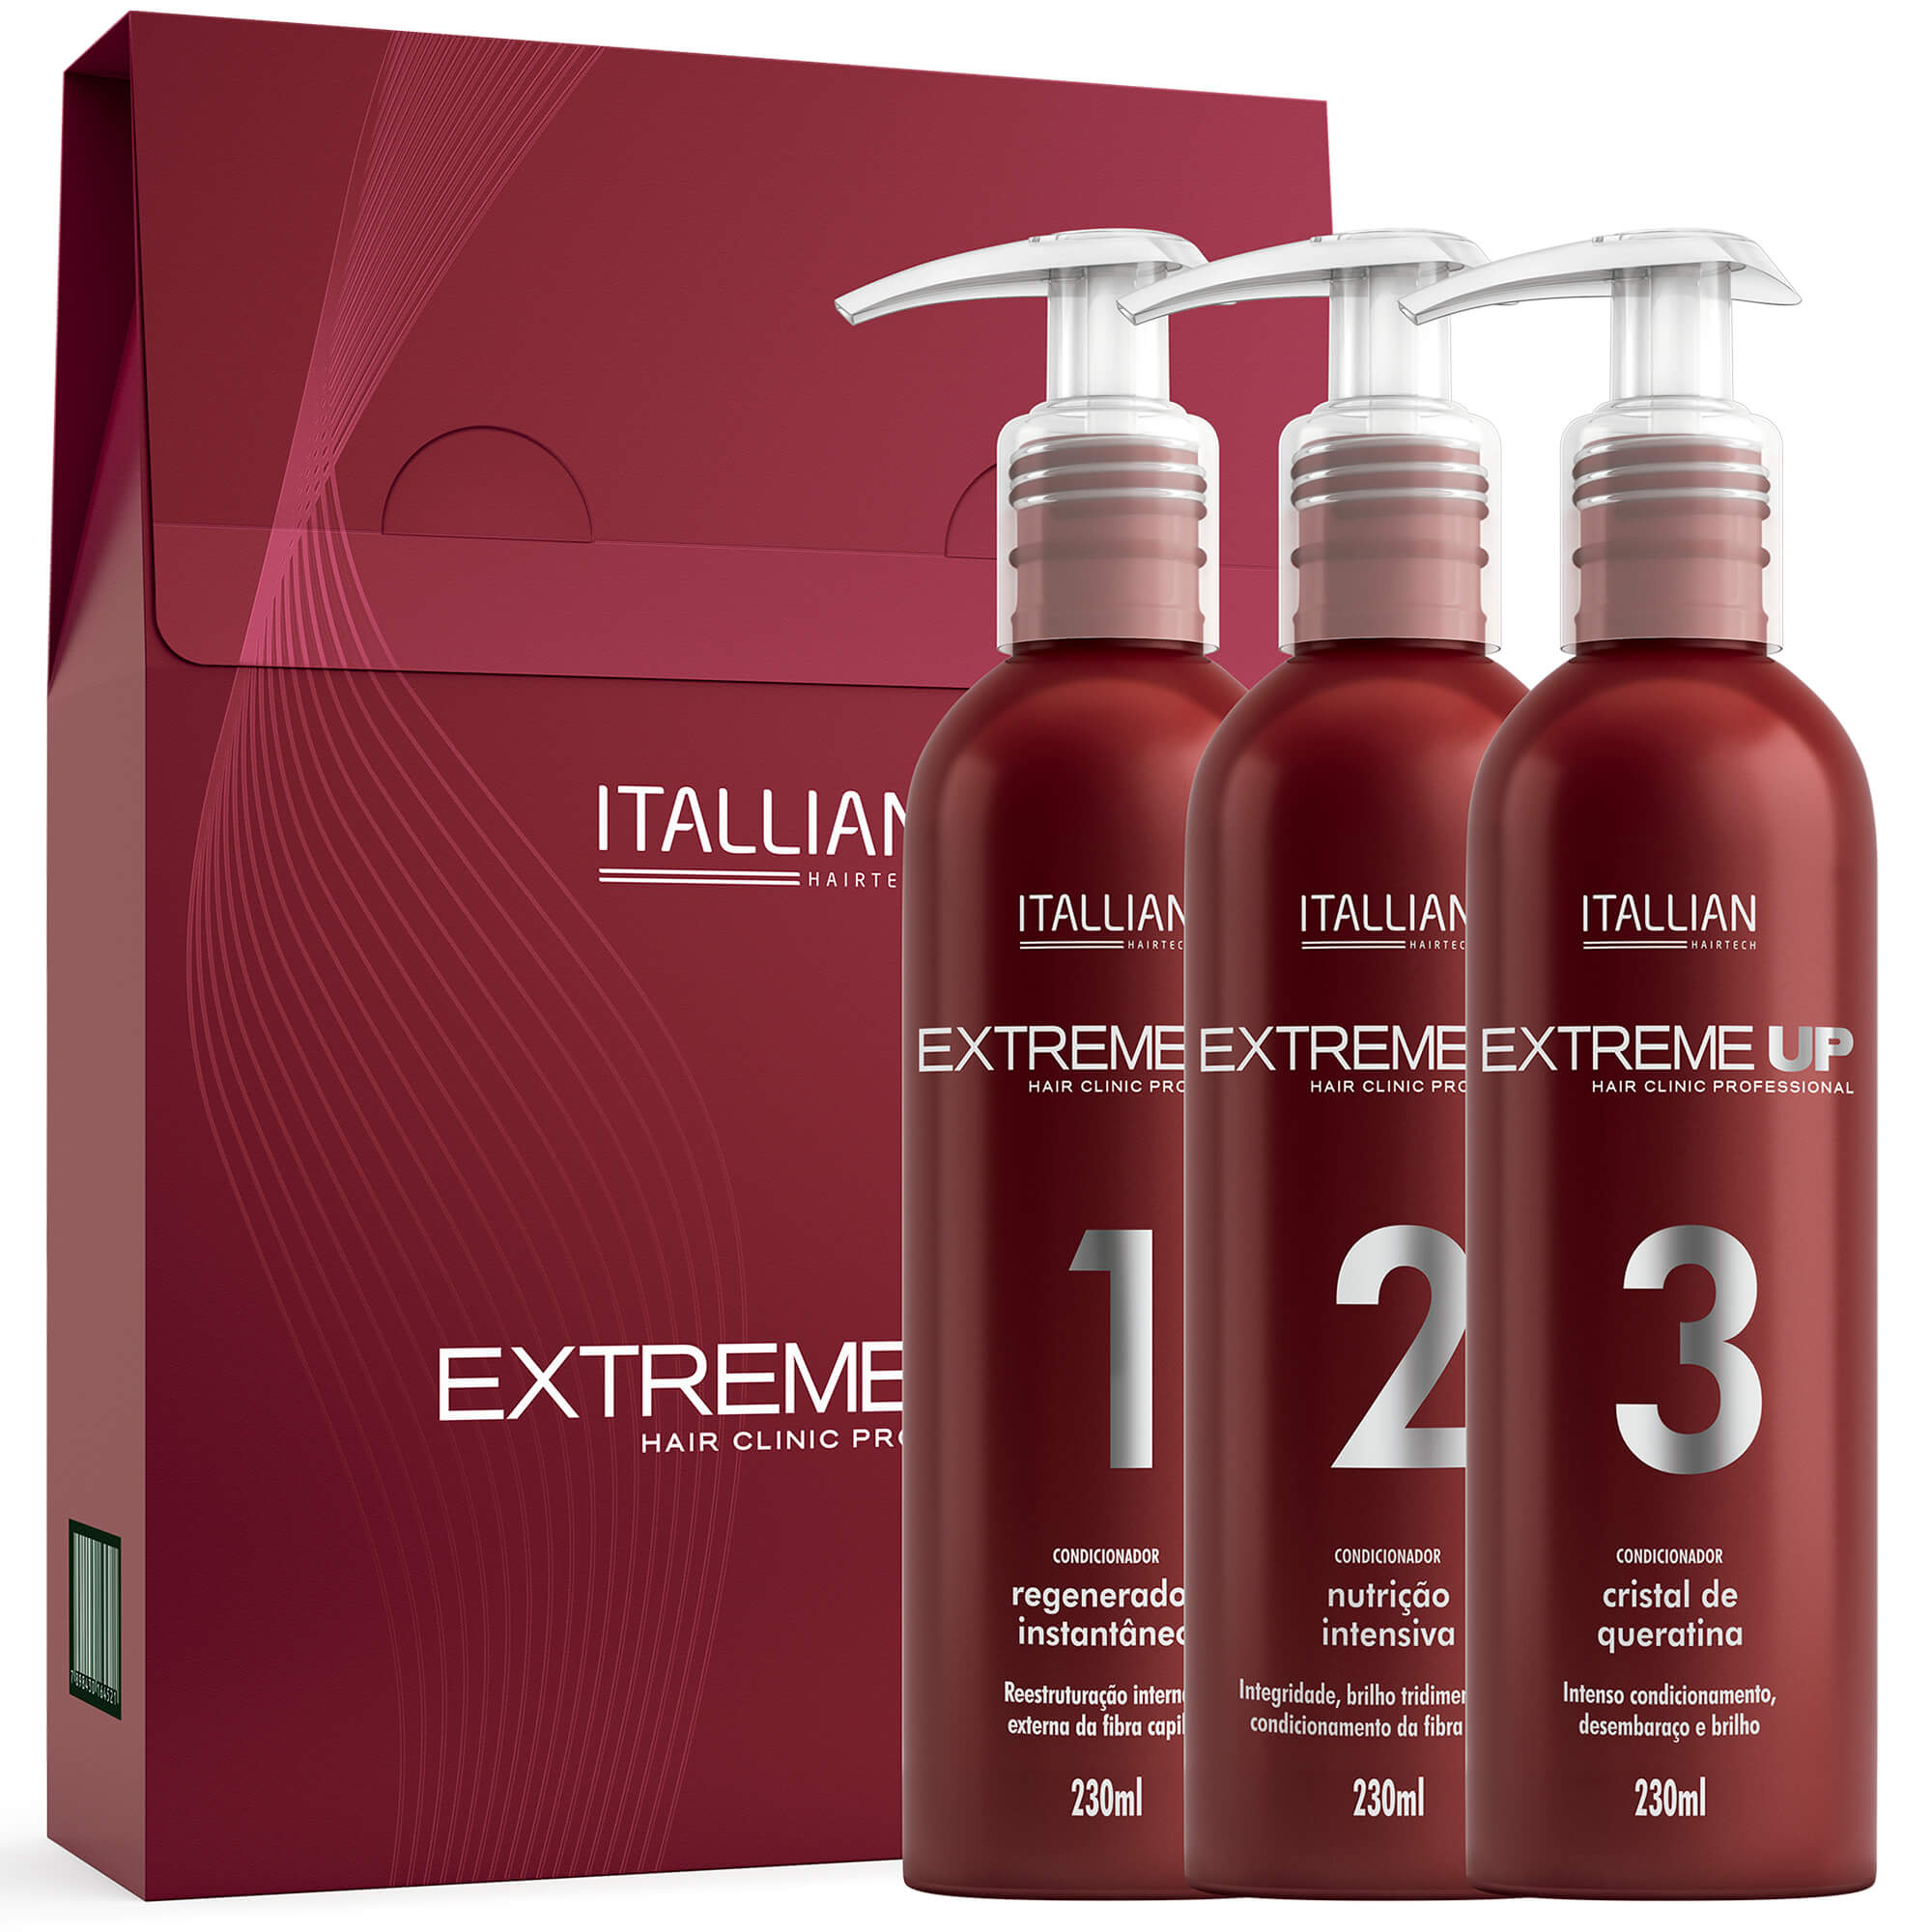 Extreme-up Hair Clinic Professional + Liso Fugace Nº 5